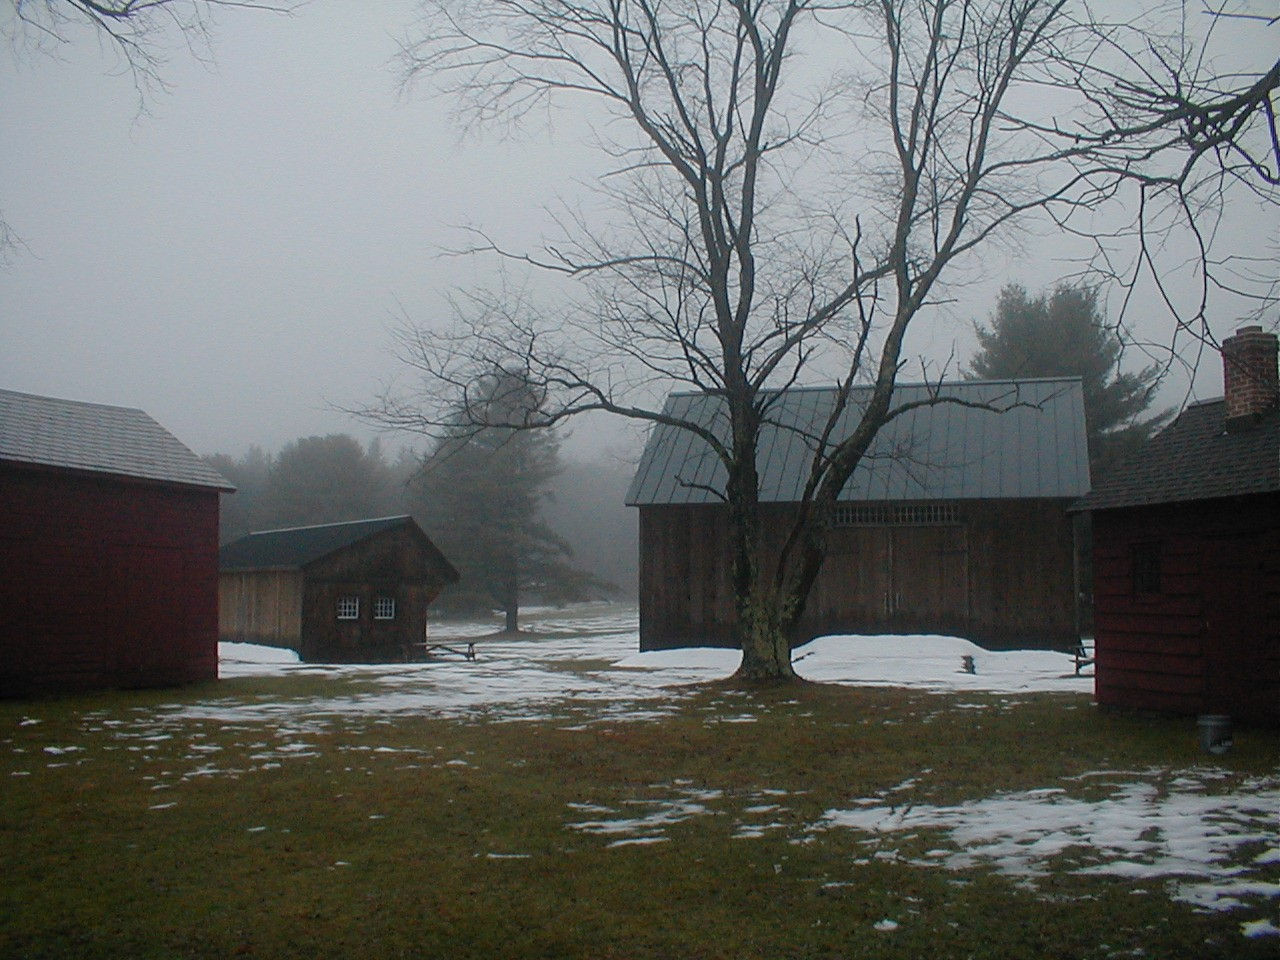 Barn&Shed in Fog